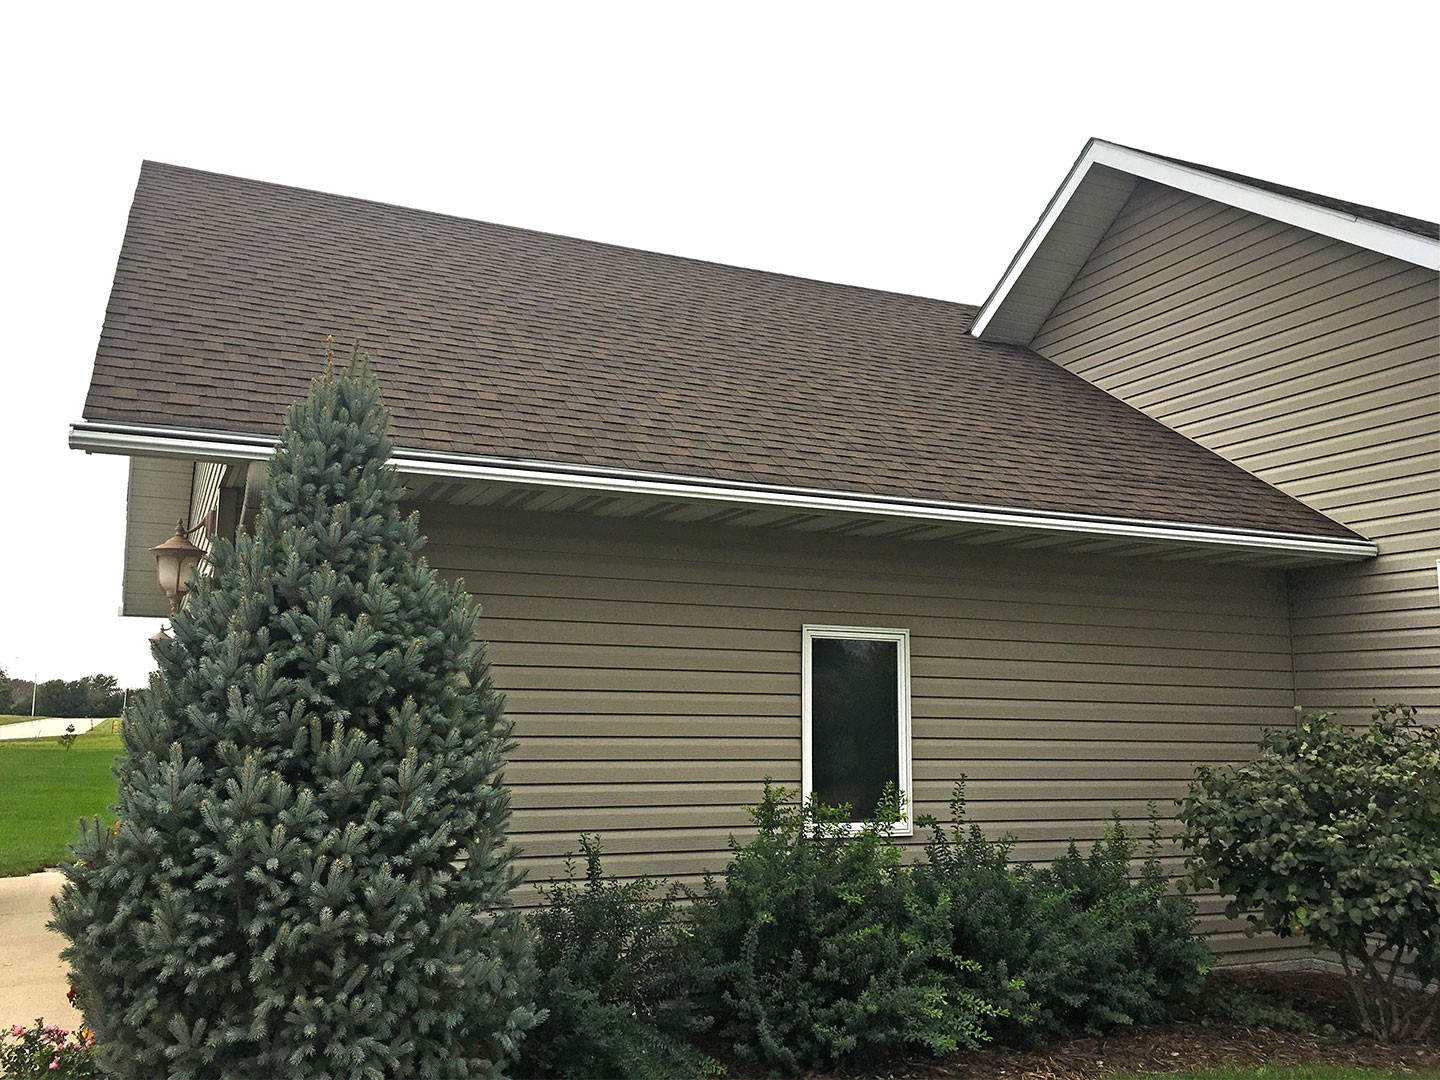 LeafGuard® Brand Gutter's clever one-piece design attaches to the fascia board of your house, eliminating leaks and roof damage.